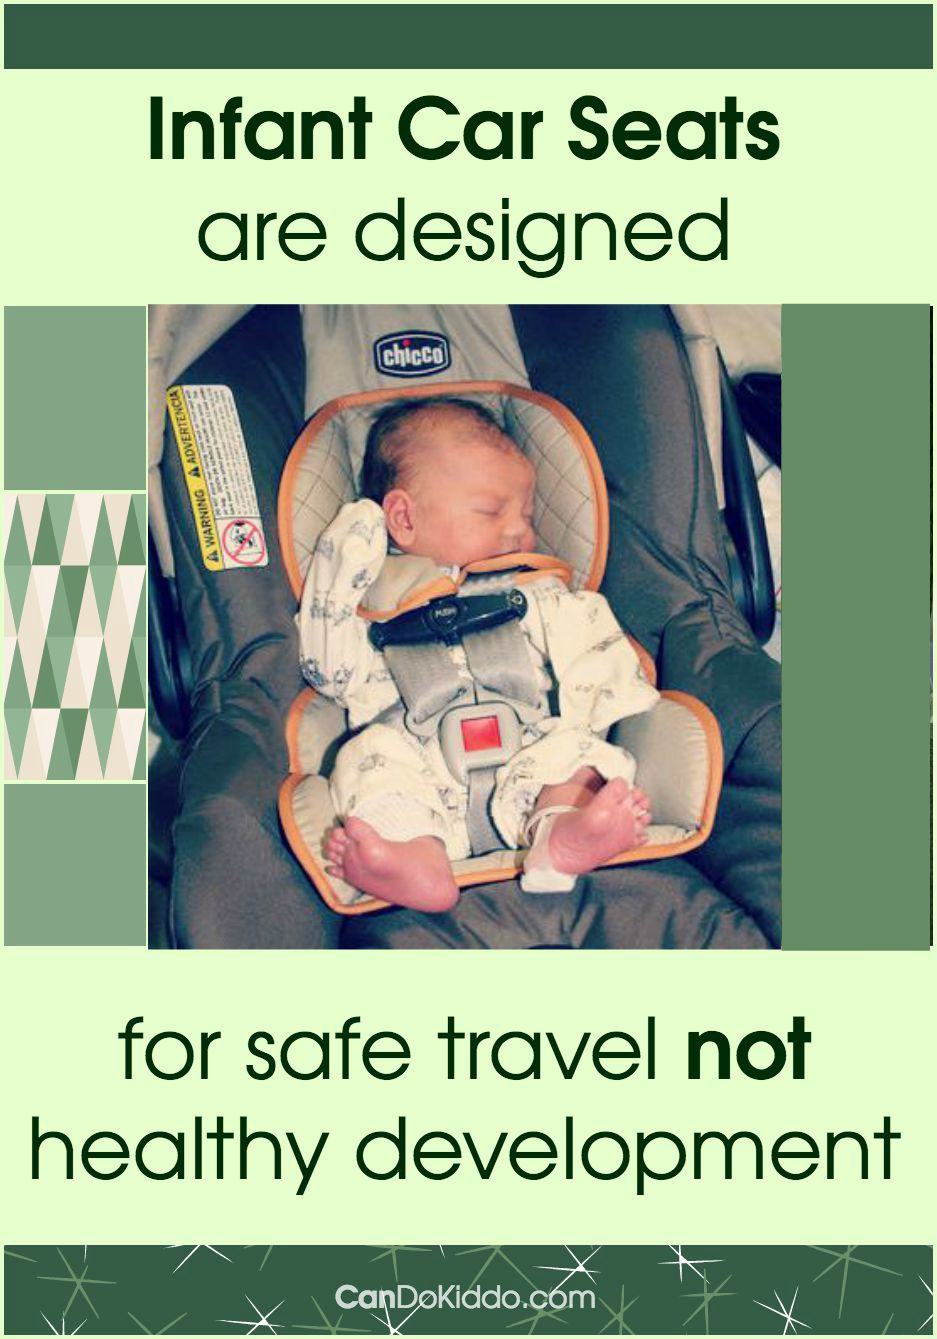 Learn more about safe travel - 10 Car Seat Safety Mistakes That Might Surprise You!